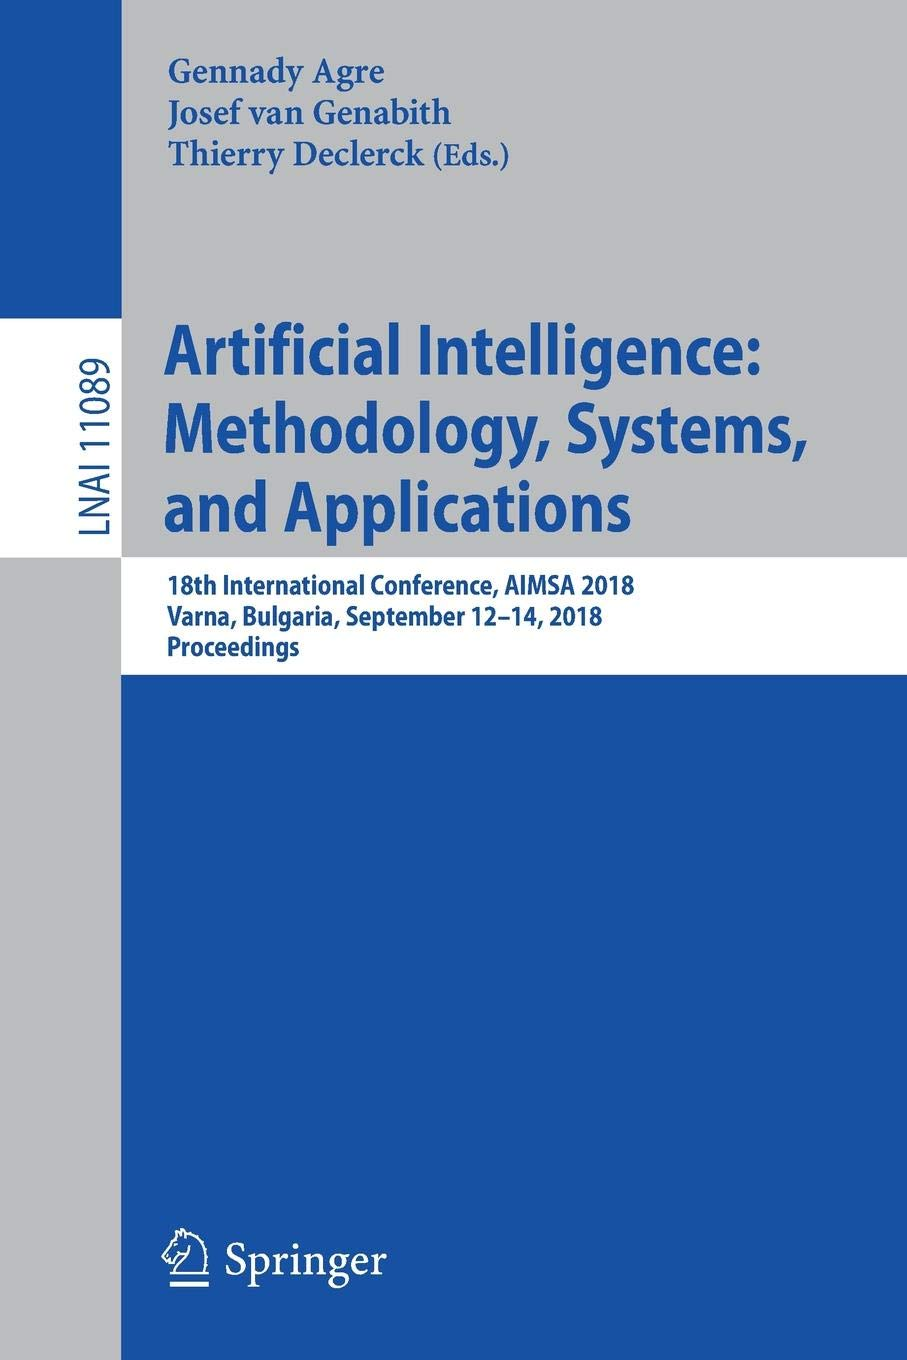 Download Artificial Intelligence: Methodology, Systems, and Applications: 18th International Conference, AIMSA 2018, Varna, Bulgaria, September 12–14, 2018, Proceedings (Lecture Notes in Computer Science) PDF